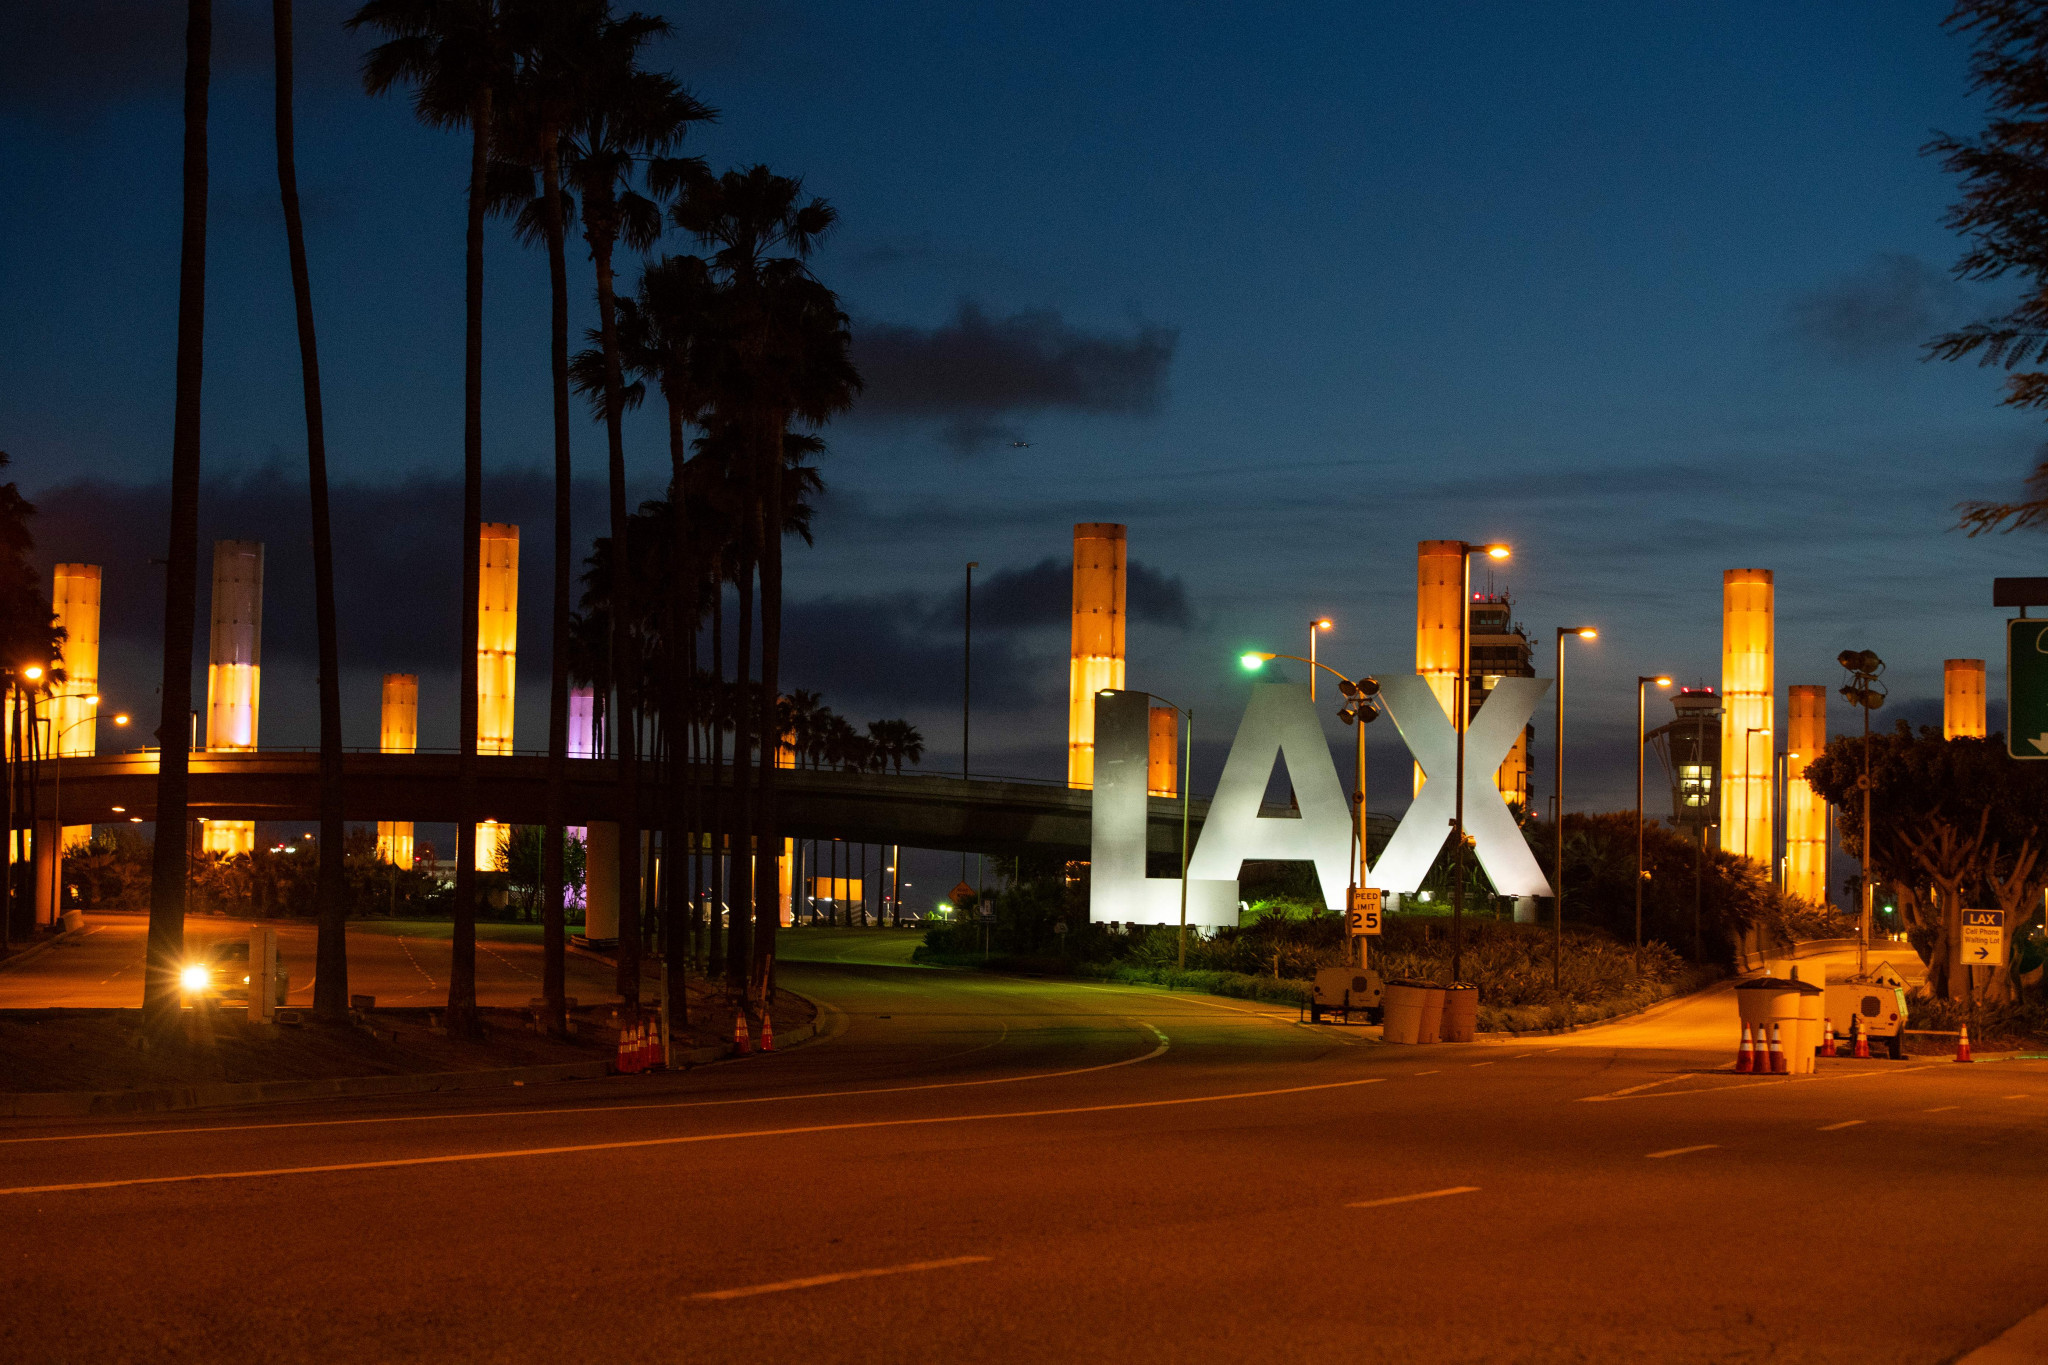 LAX revamp ahead of schedule, Los Angeles 2028 sponsor Delta Air Lines boasts